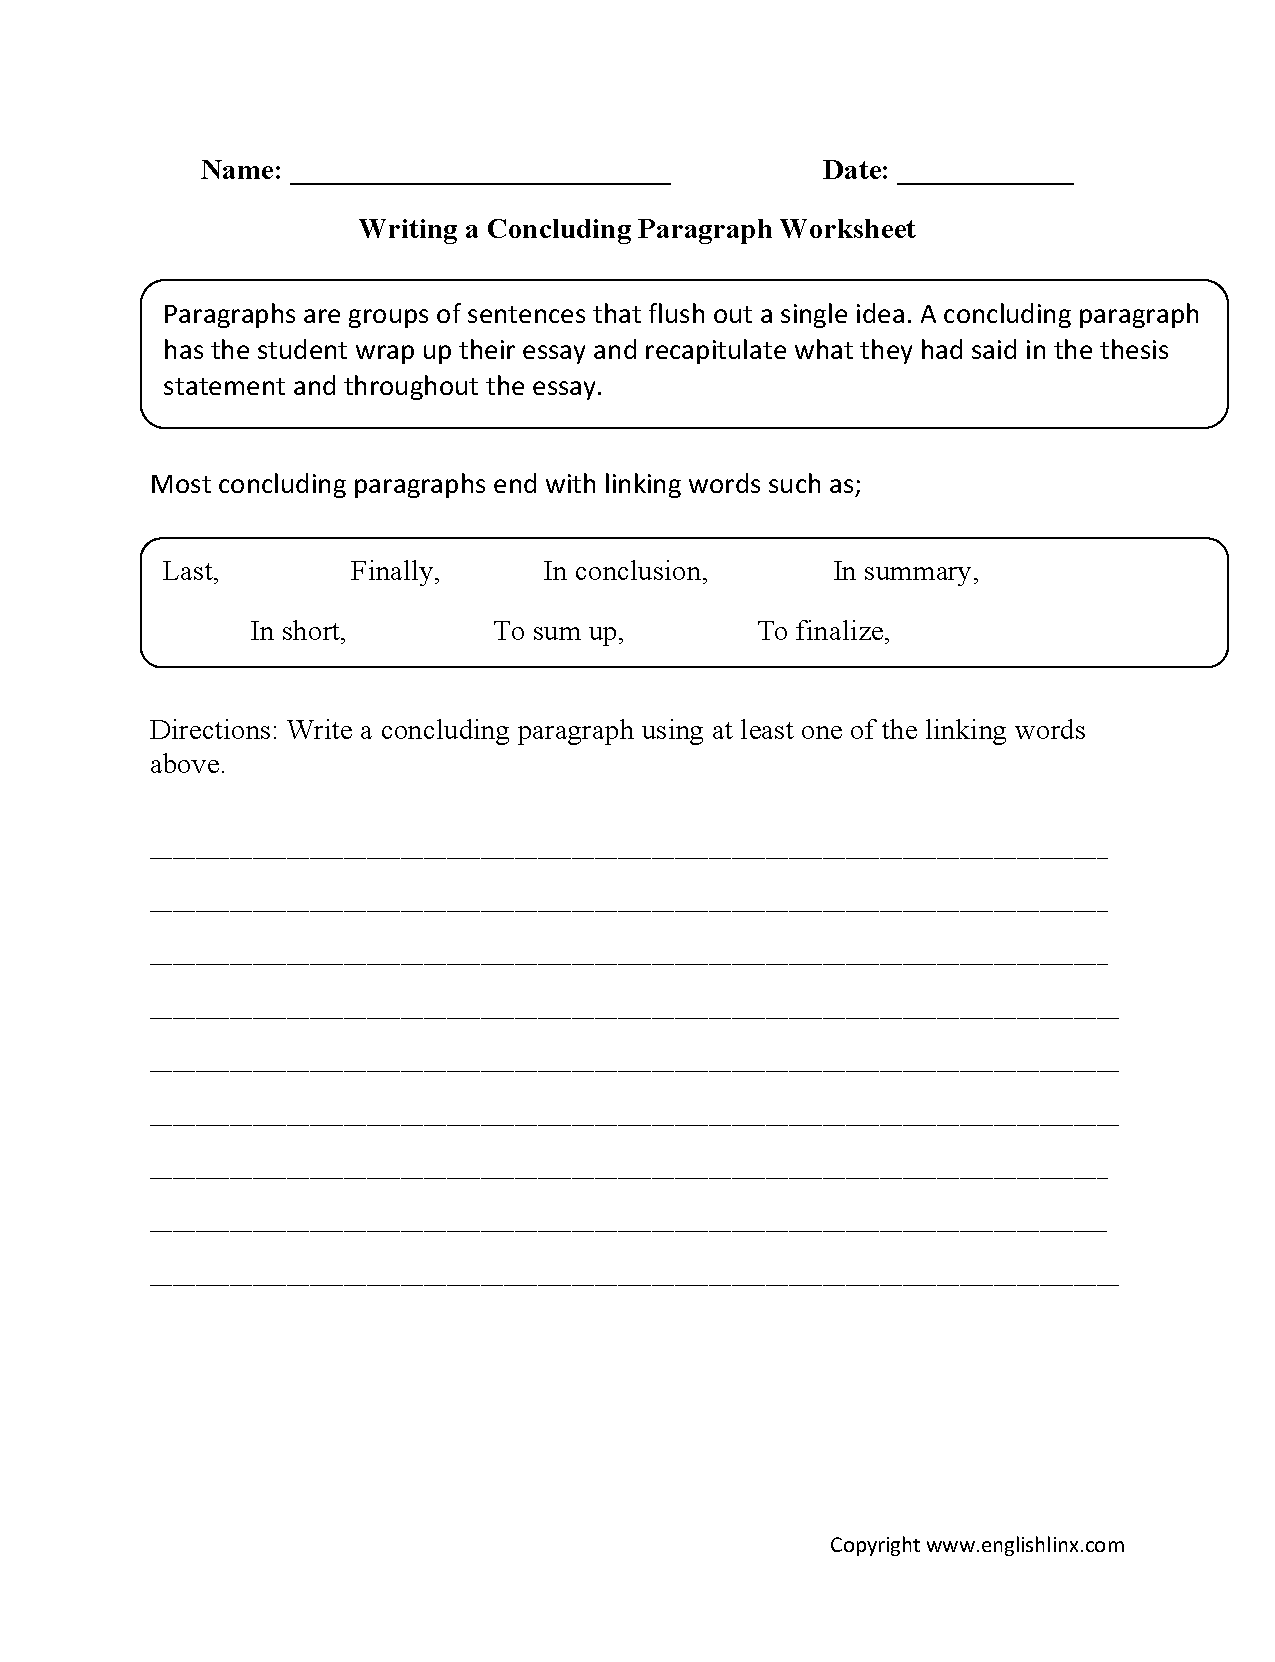 9 Best Ereading Worksheets Images On Worksheets Ideas Select the topic to view and print available worksheets. best worksheets for kids